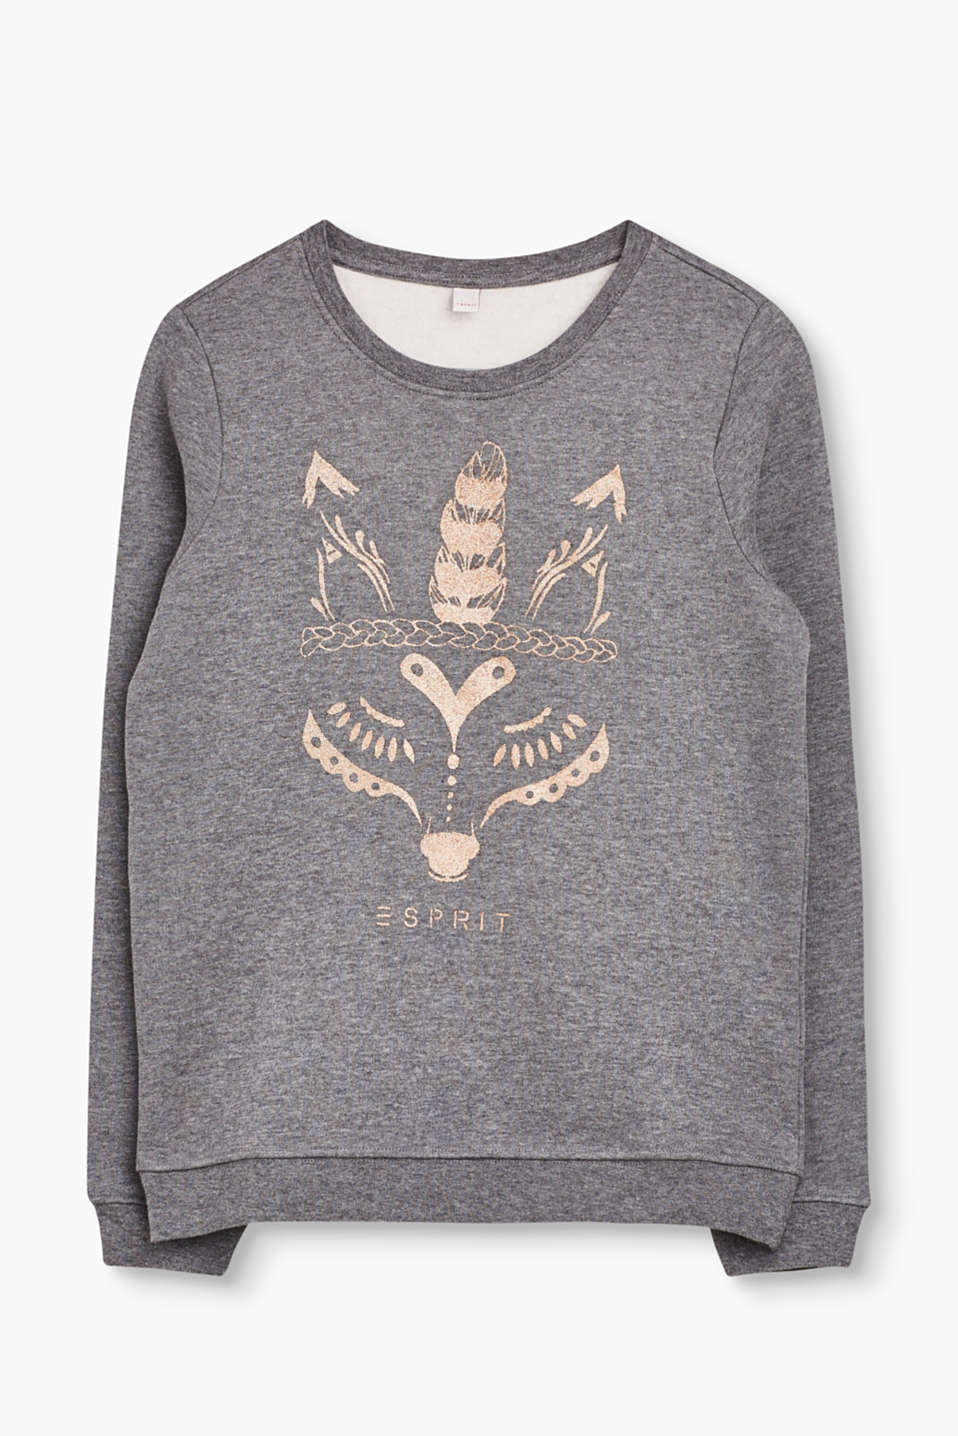 This pleasantly soft cotton sweatshirt is defined by its large glitter print on the front